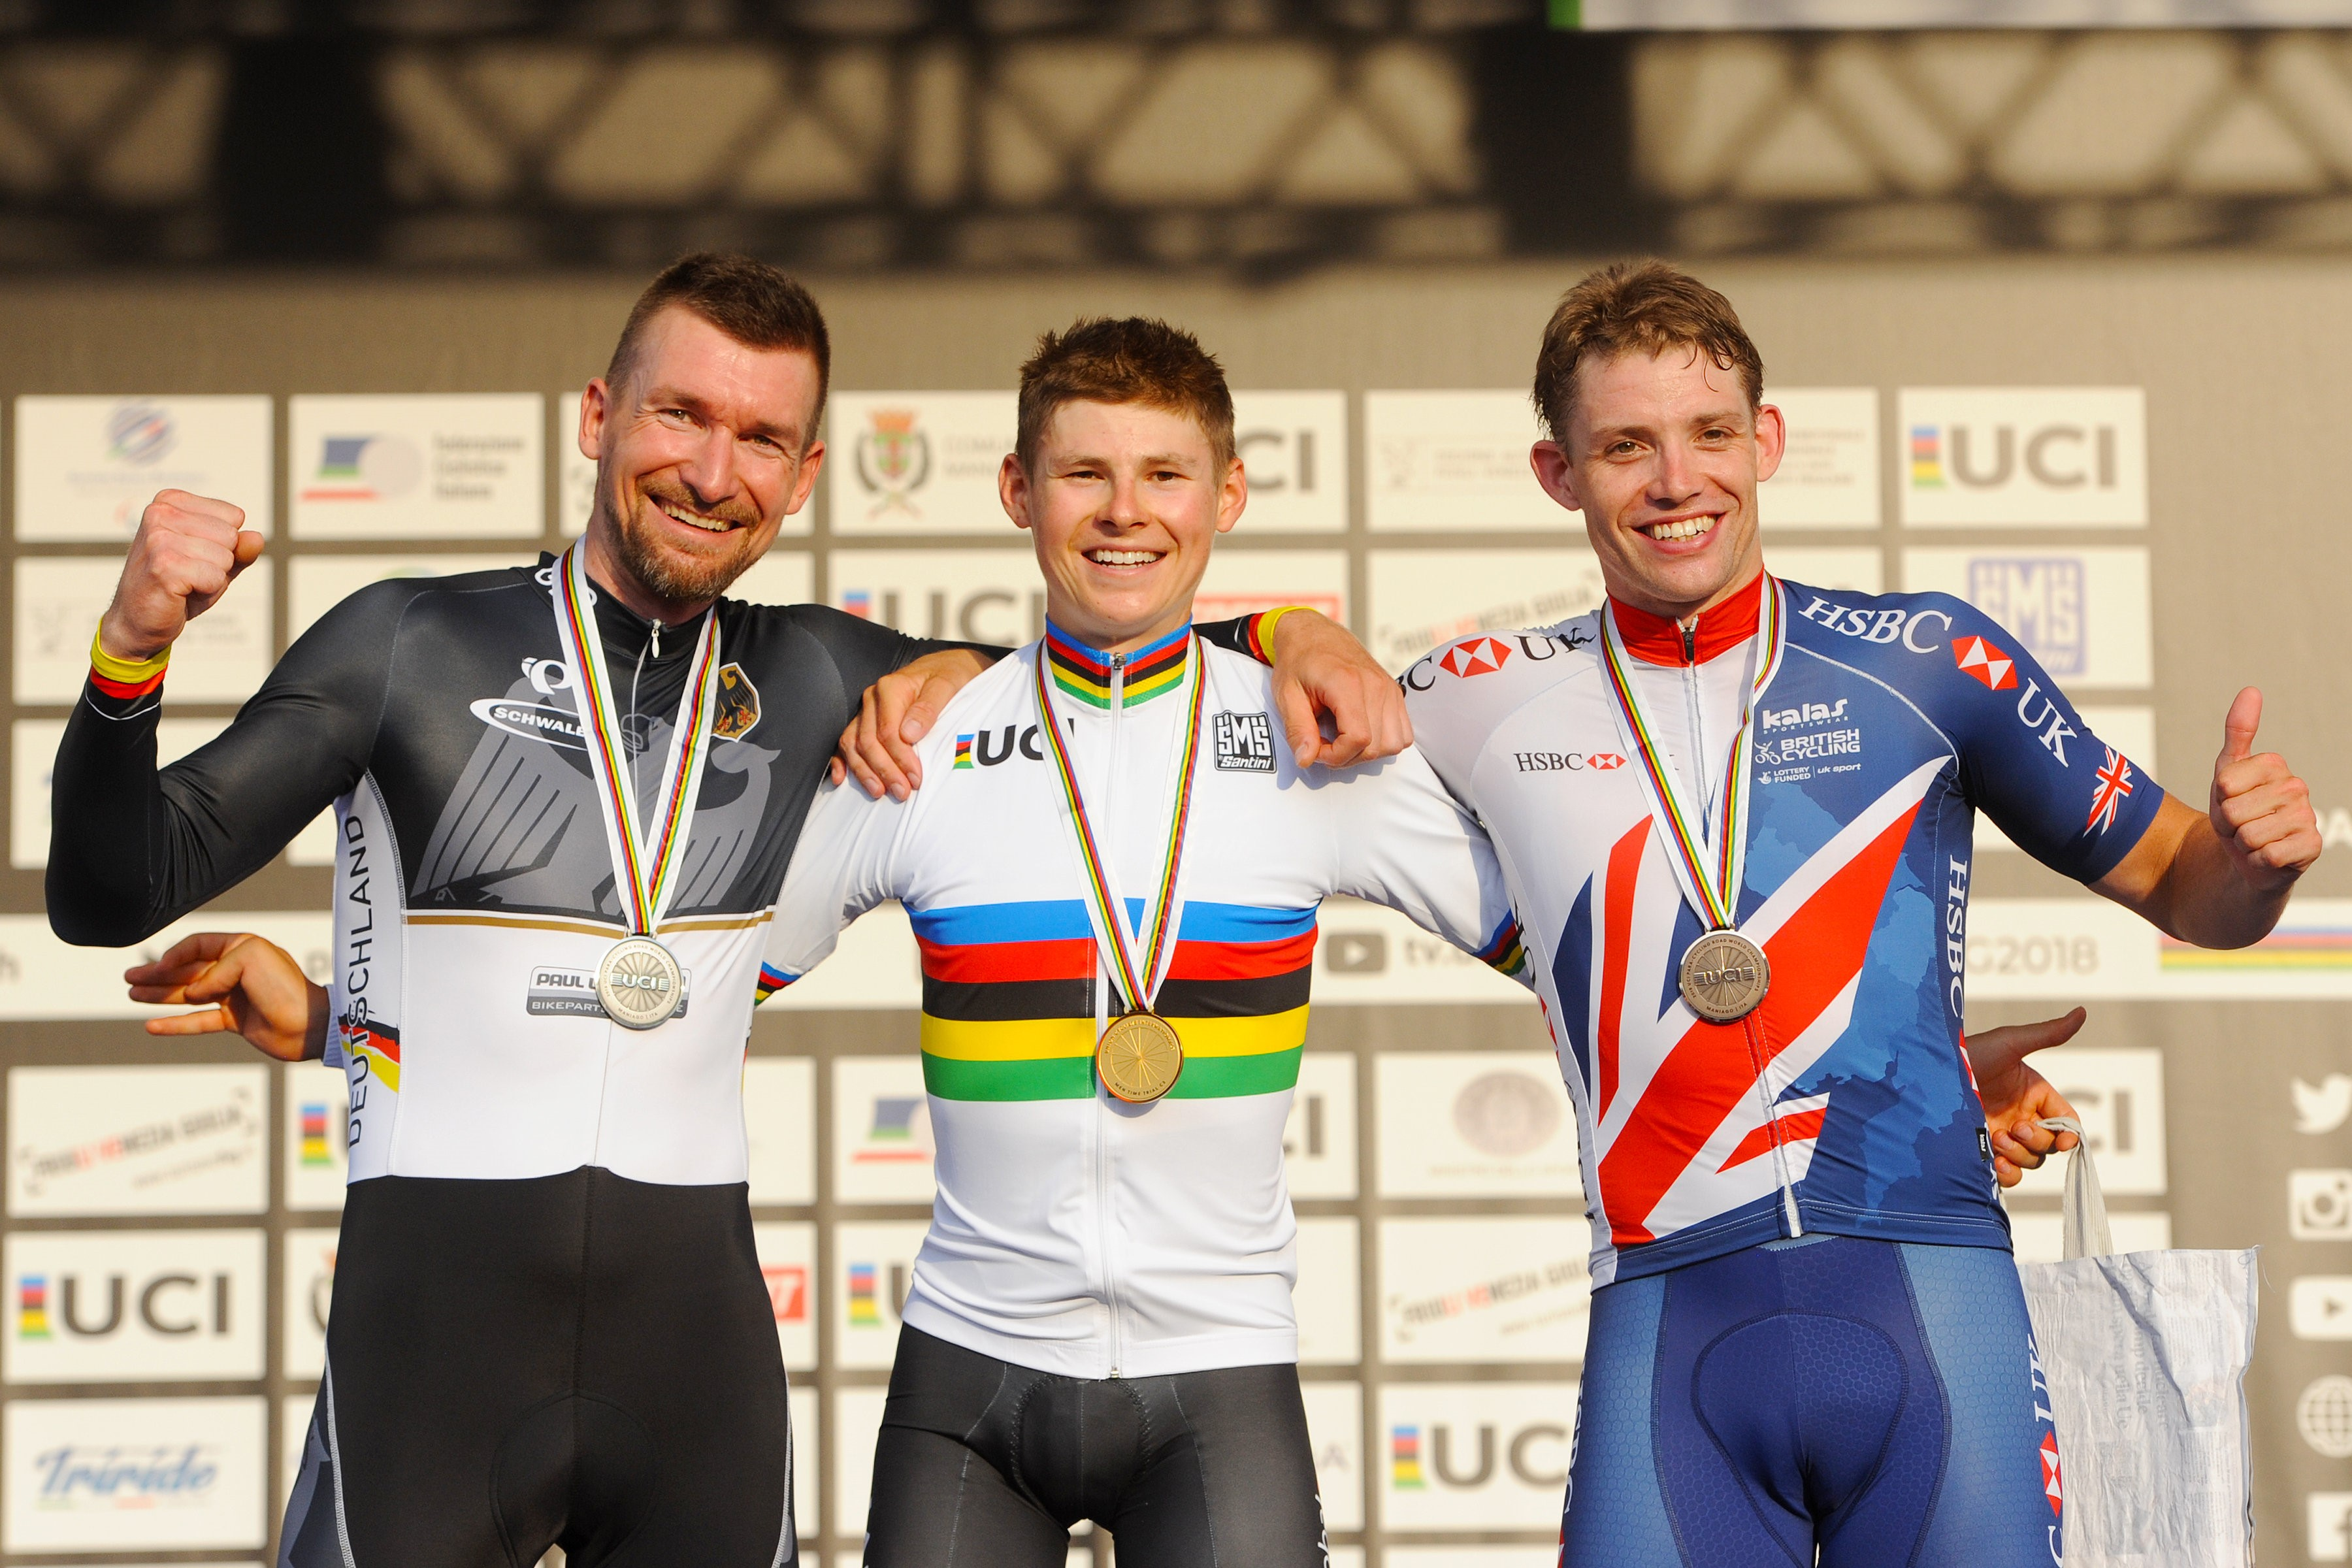 Michael Sametz (middle) after receiving his gold medal at the 2018 Para cycling road world championships